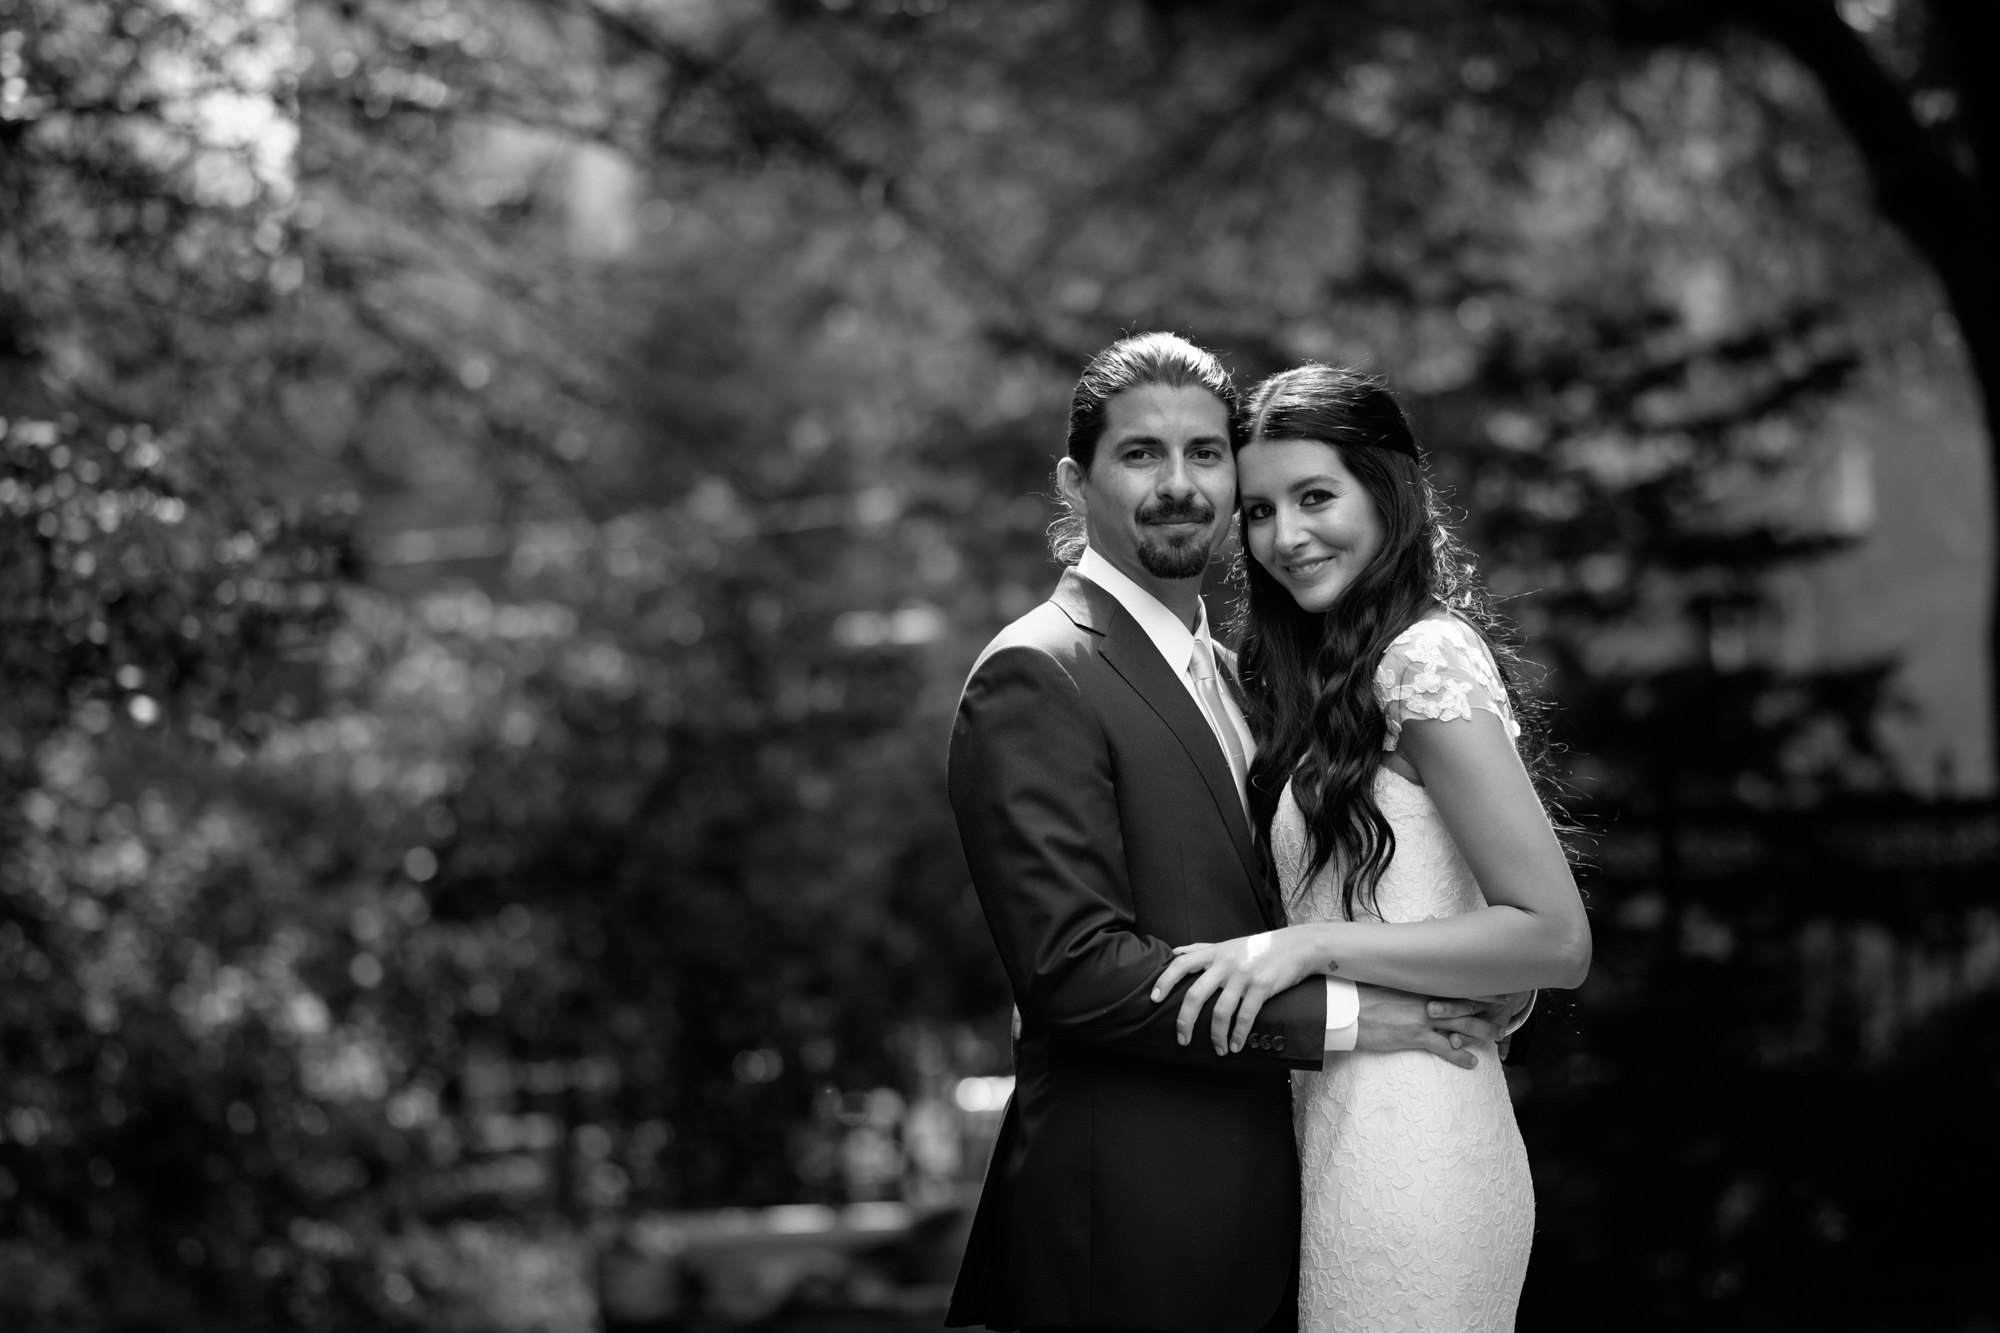 Danni + Felipe pose for a formal wedding portrait at Osgood Hall before their wedding at the Fermenting Cellar in Toronto.